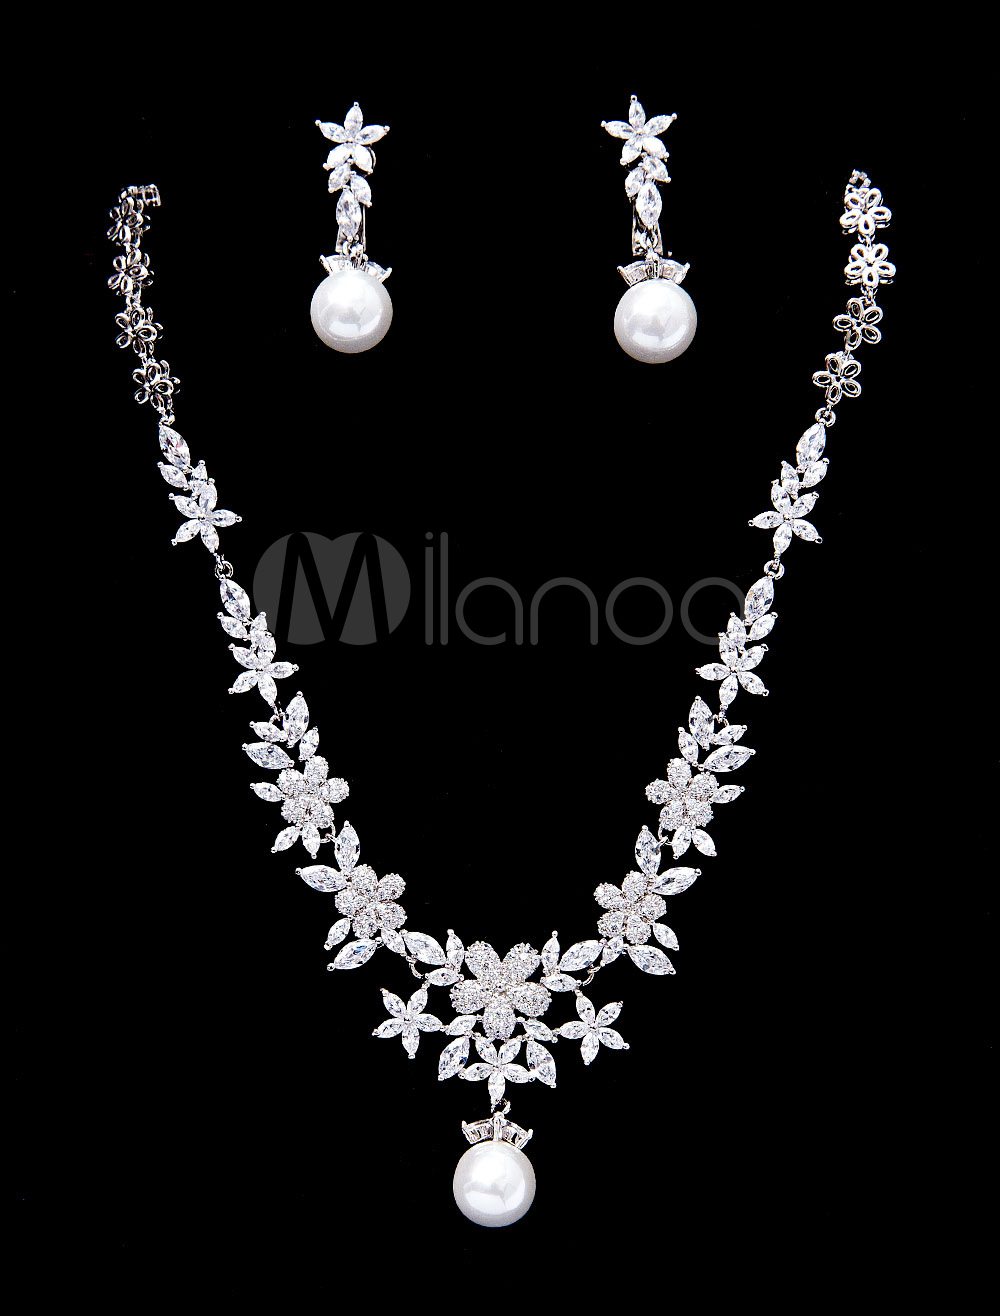 Wedding Jewelry Set Silver Pearls Beaded Bridal Pendant Necklace With Clip Earrings